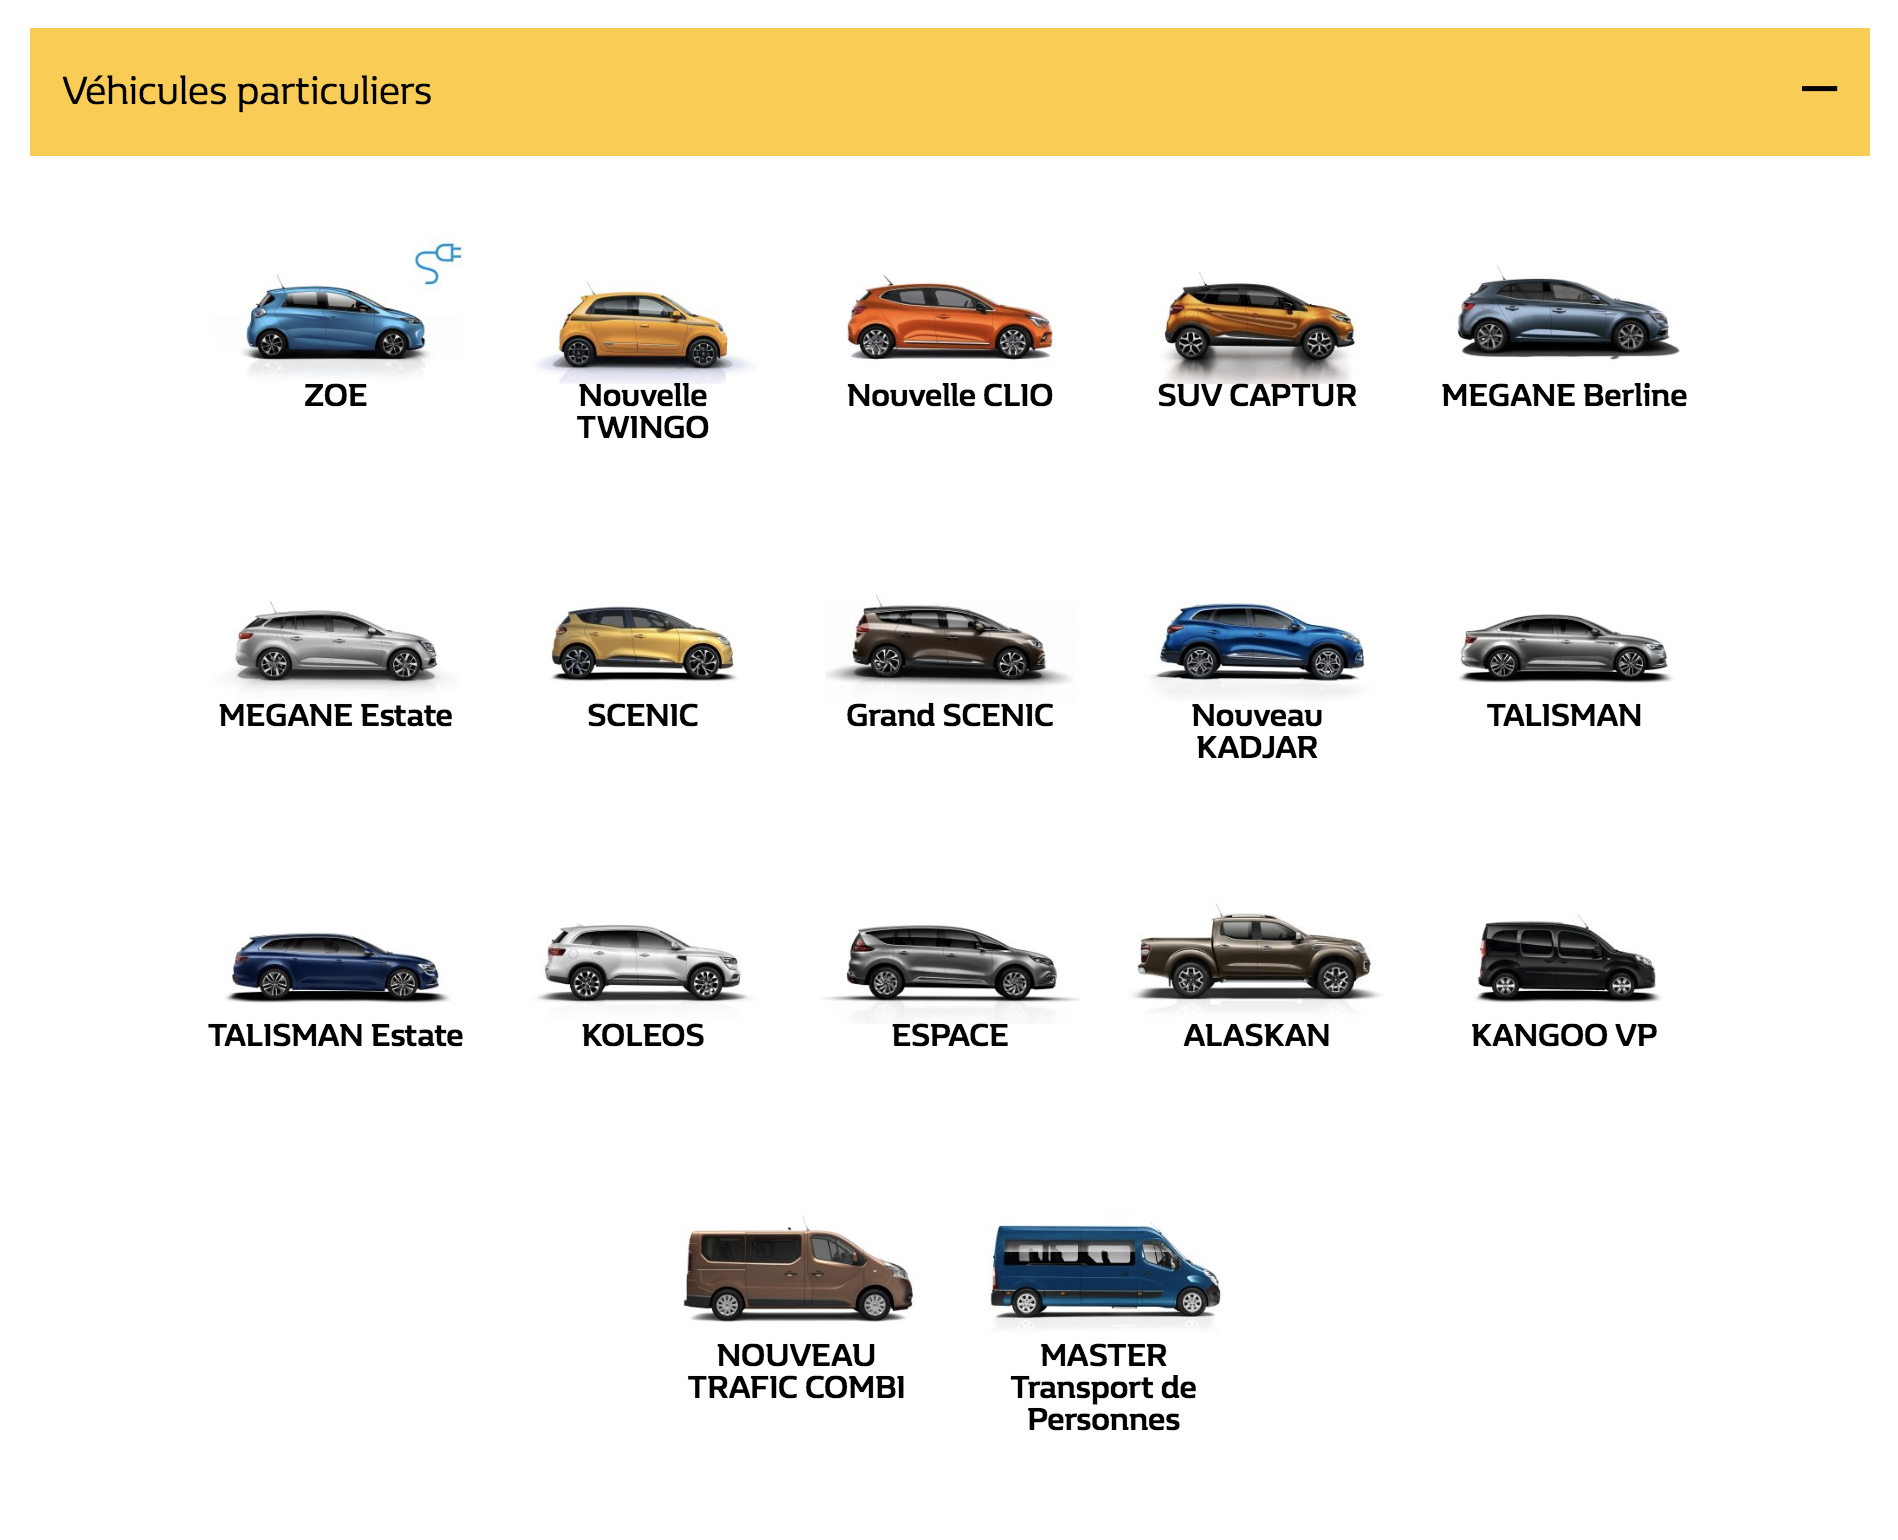 Vehicules_Particuliers